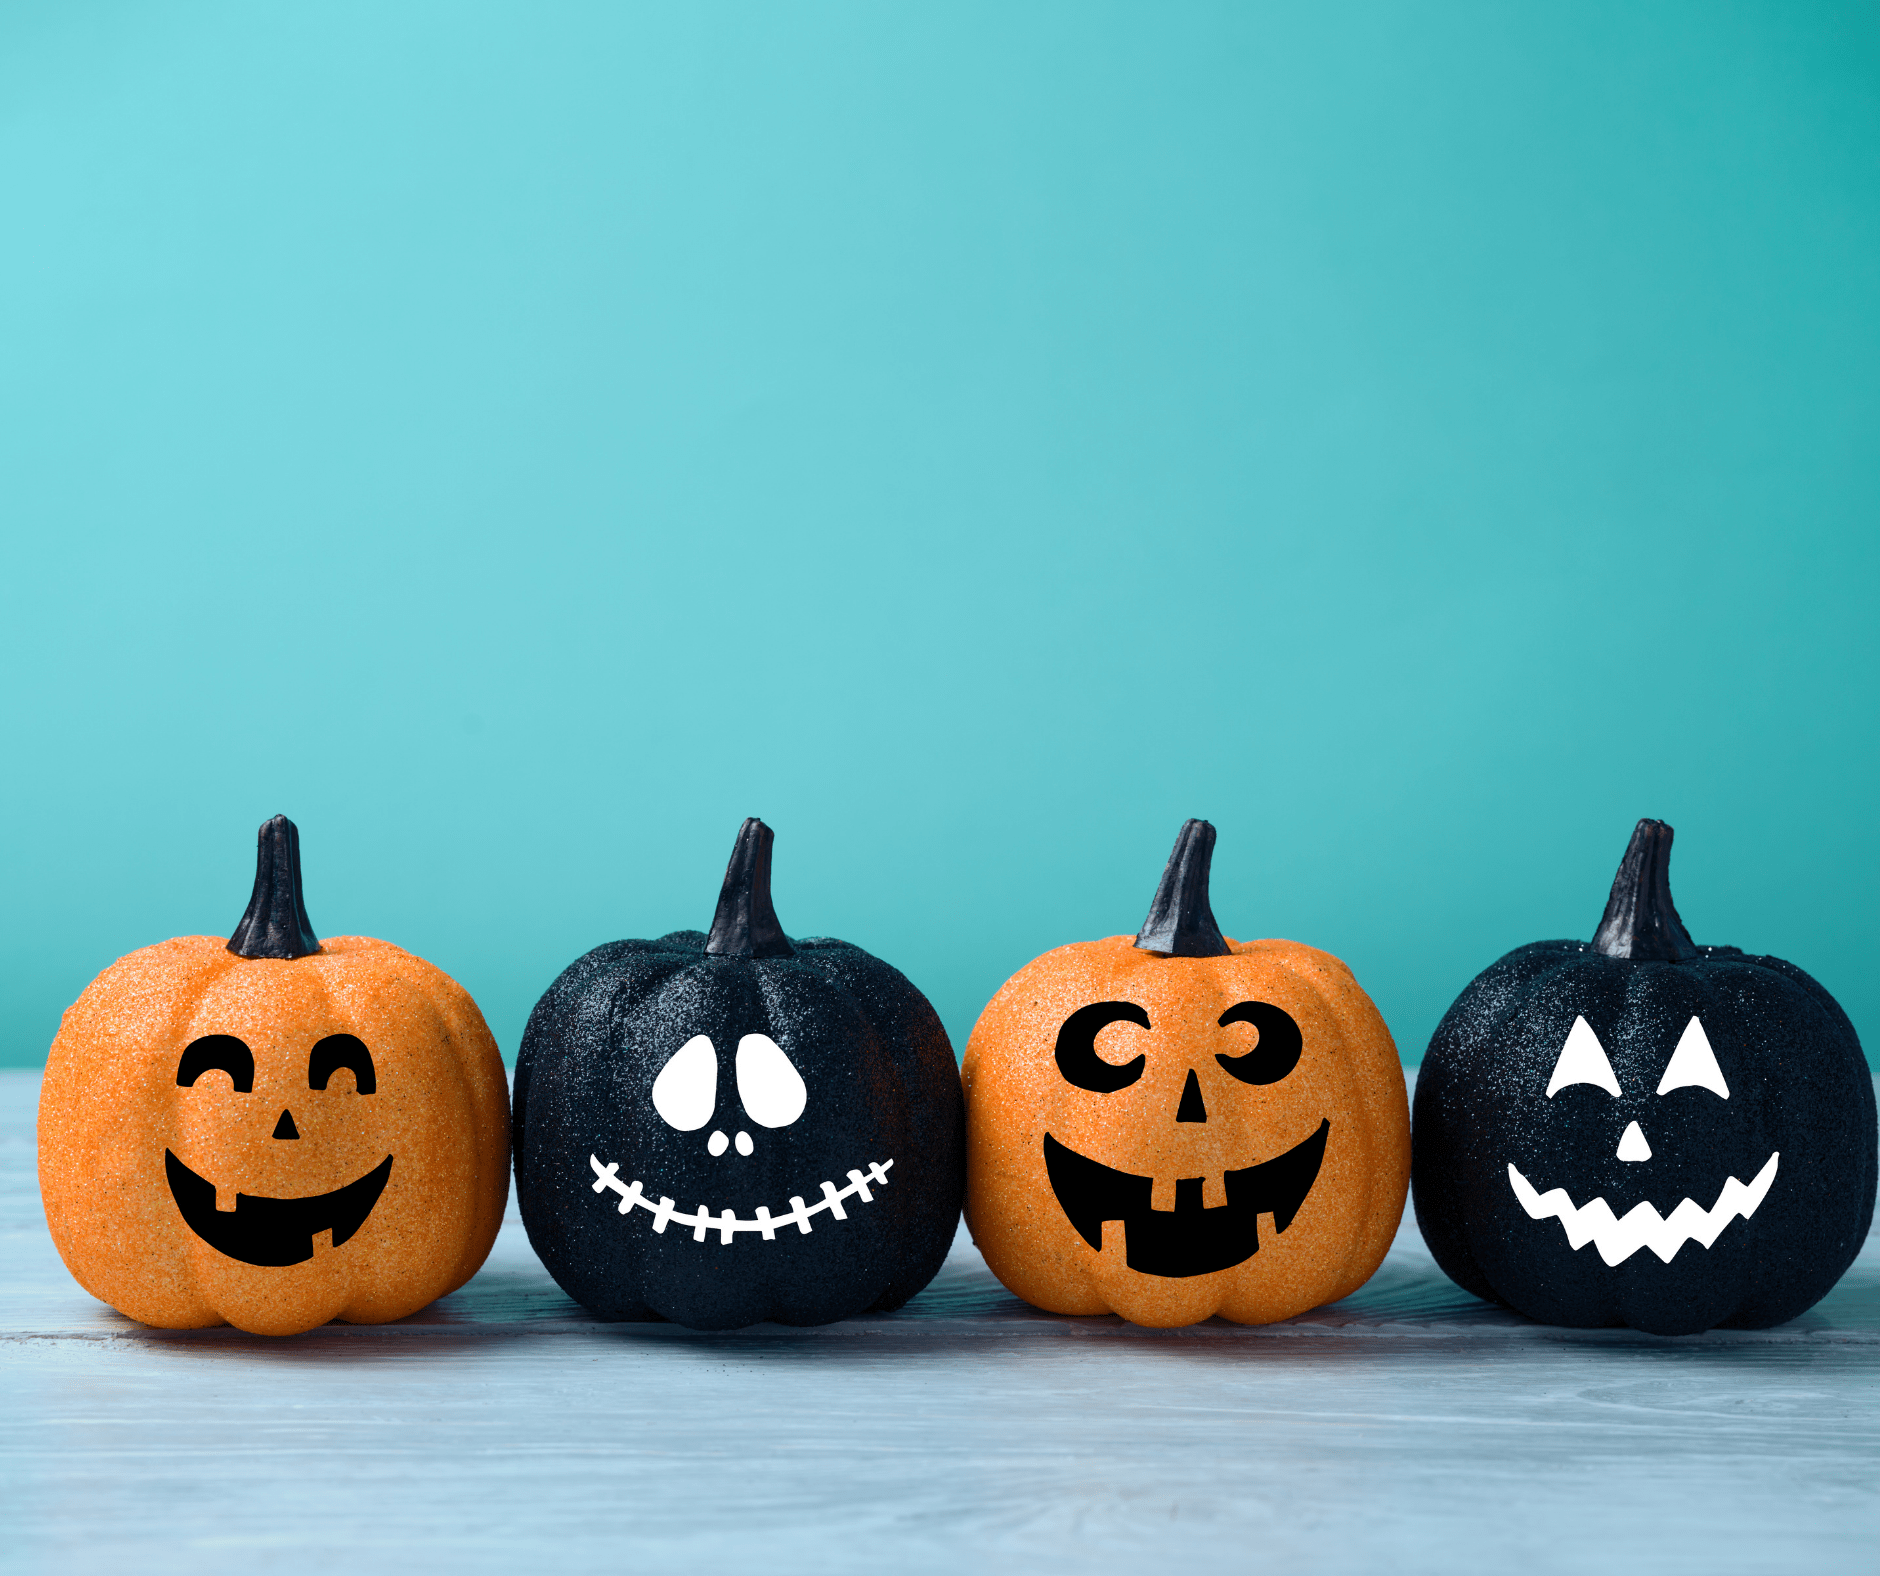 30 Halloween Blog Post Ideas For any niche #halloween #blog #post #ideas